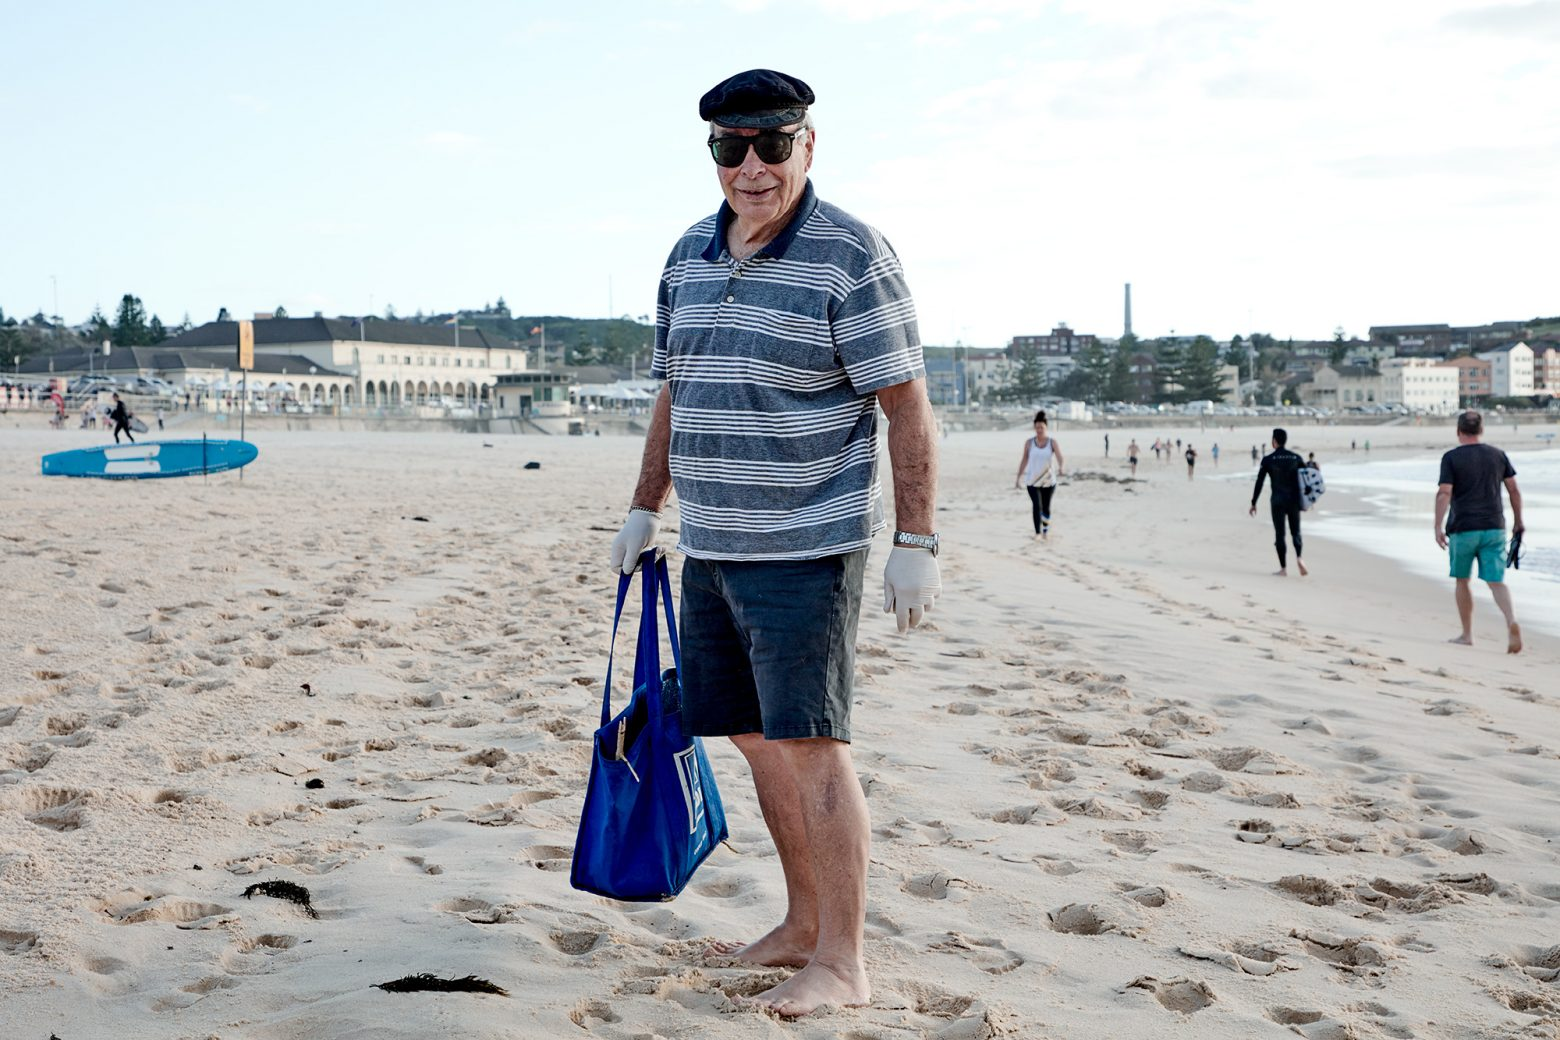 Our very own beach guardian, Cedric Amoils (80) cleaning up after the slobs